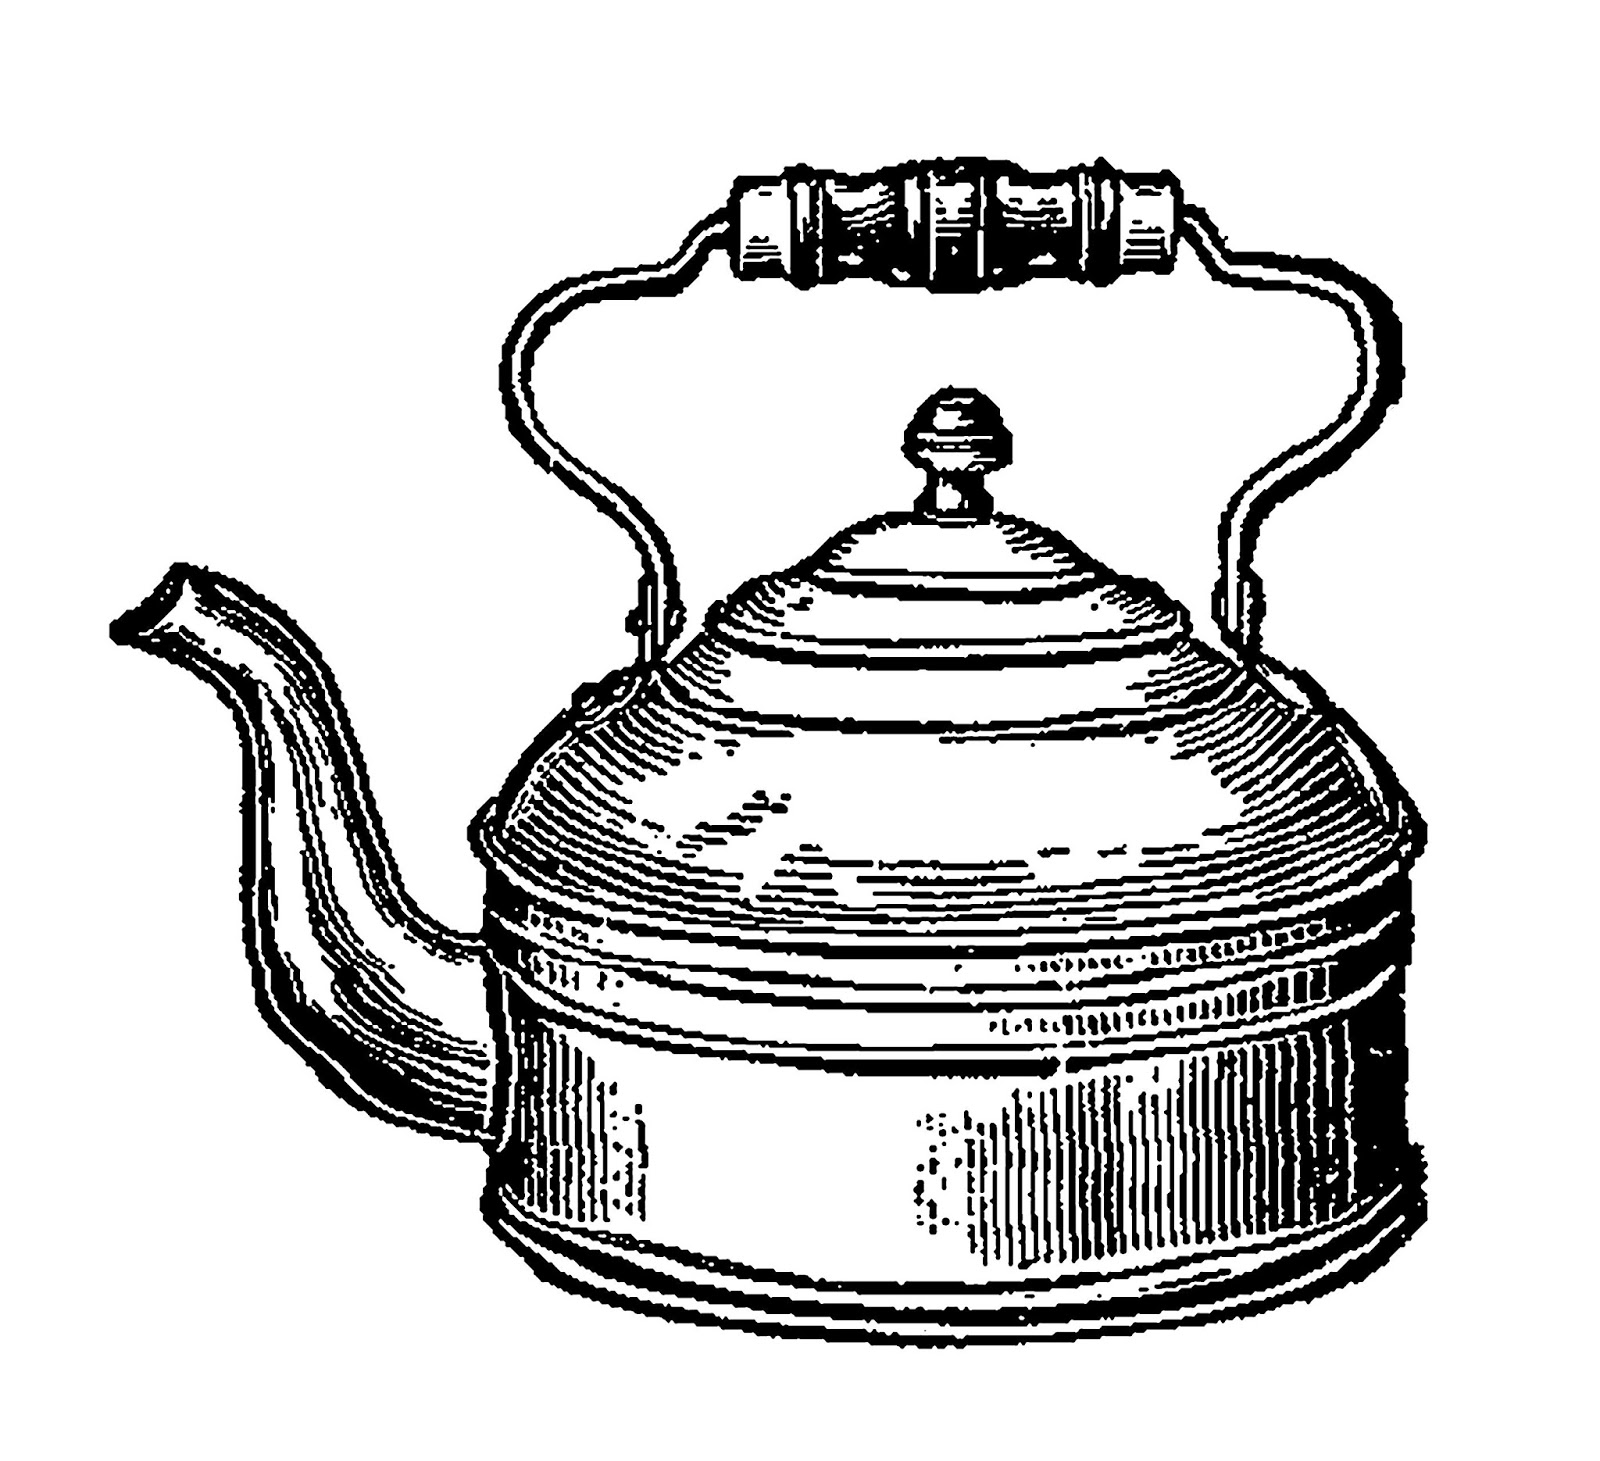 1600x1461 Digital Stamp Design Tea Kettle Image Vintage Kitchen Illustration